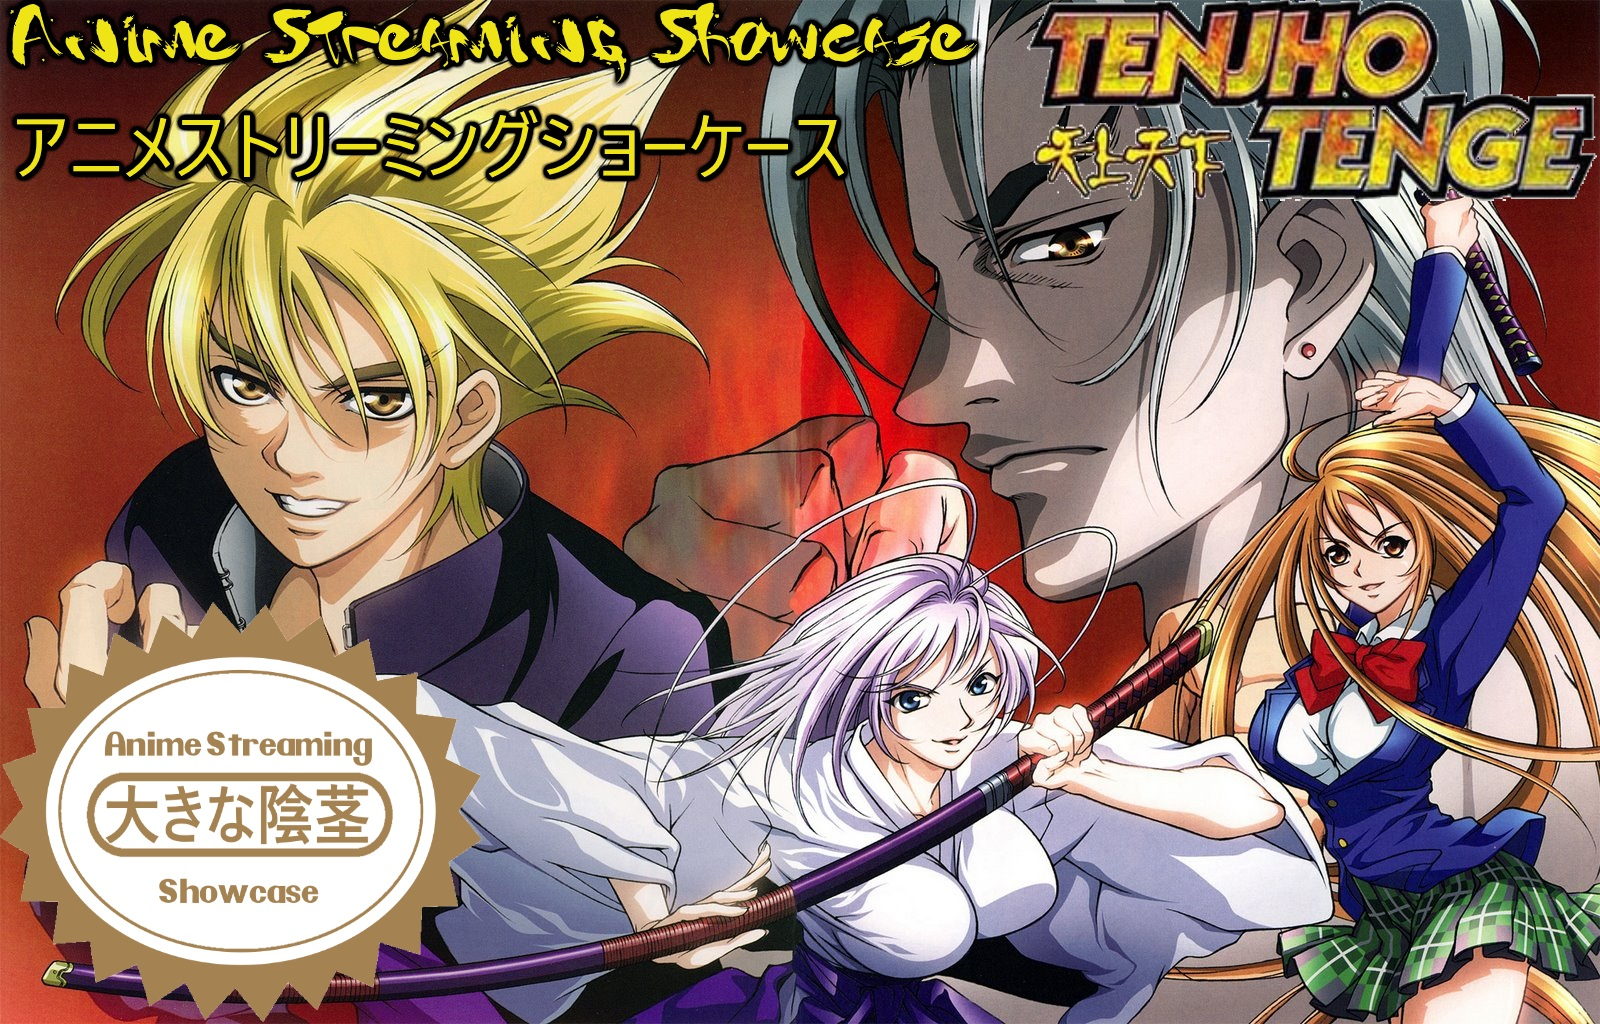 Anime Streaming Showcase, A.S.S., ASS, anime,manga, youtube, video, Tenjho Tenge, Tenjou Tenge,